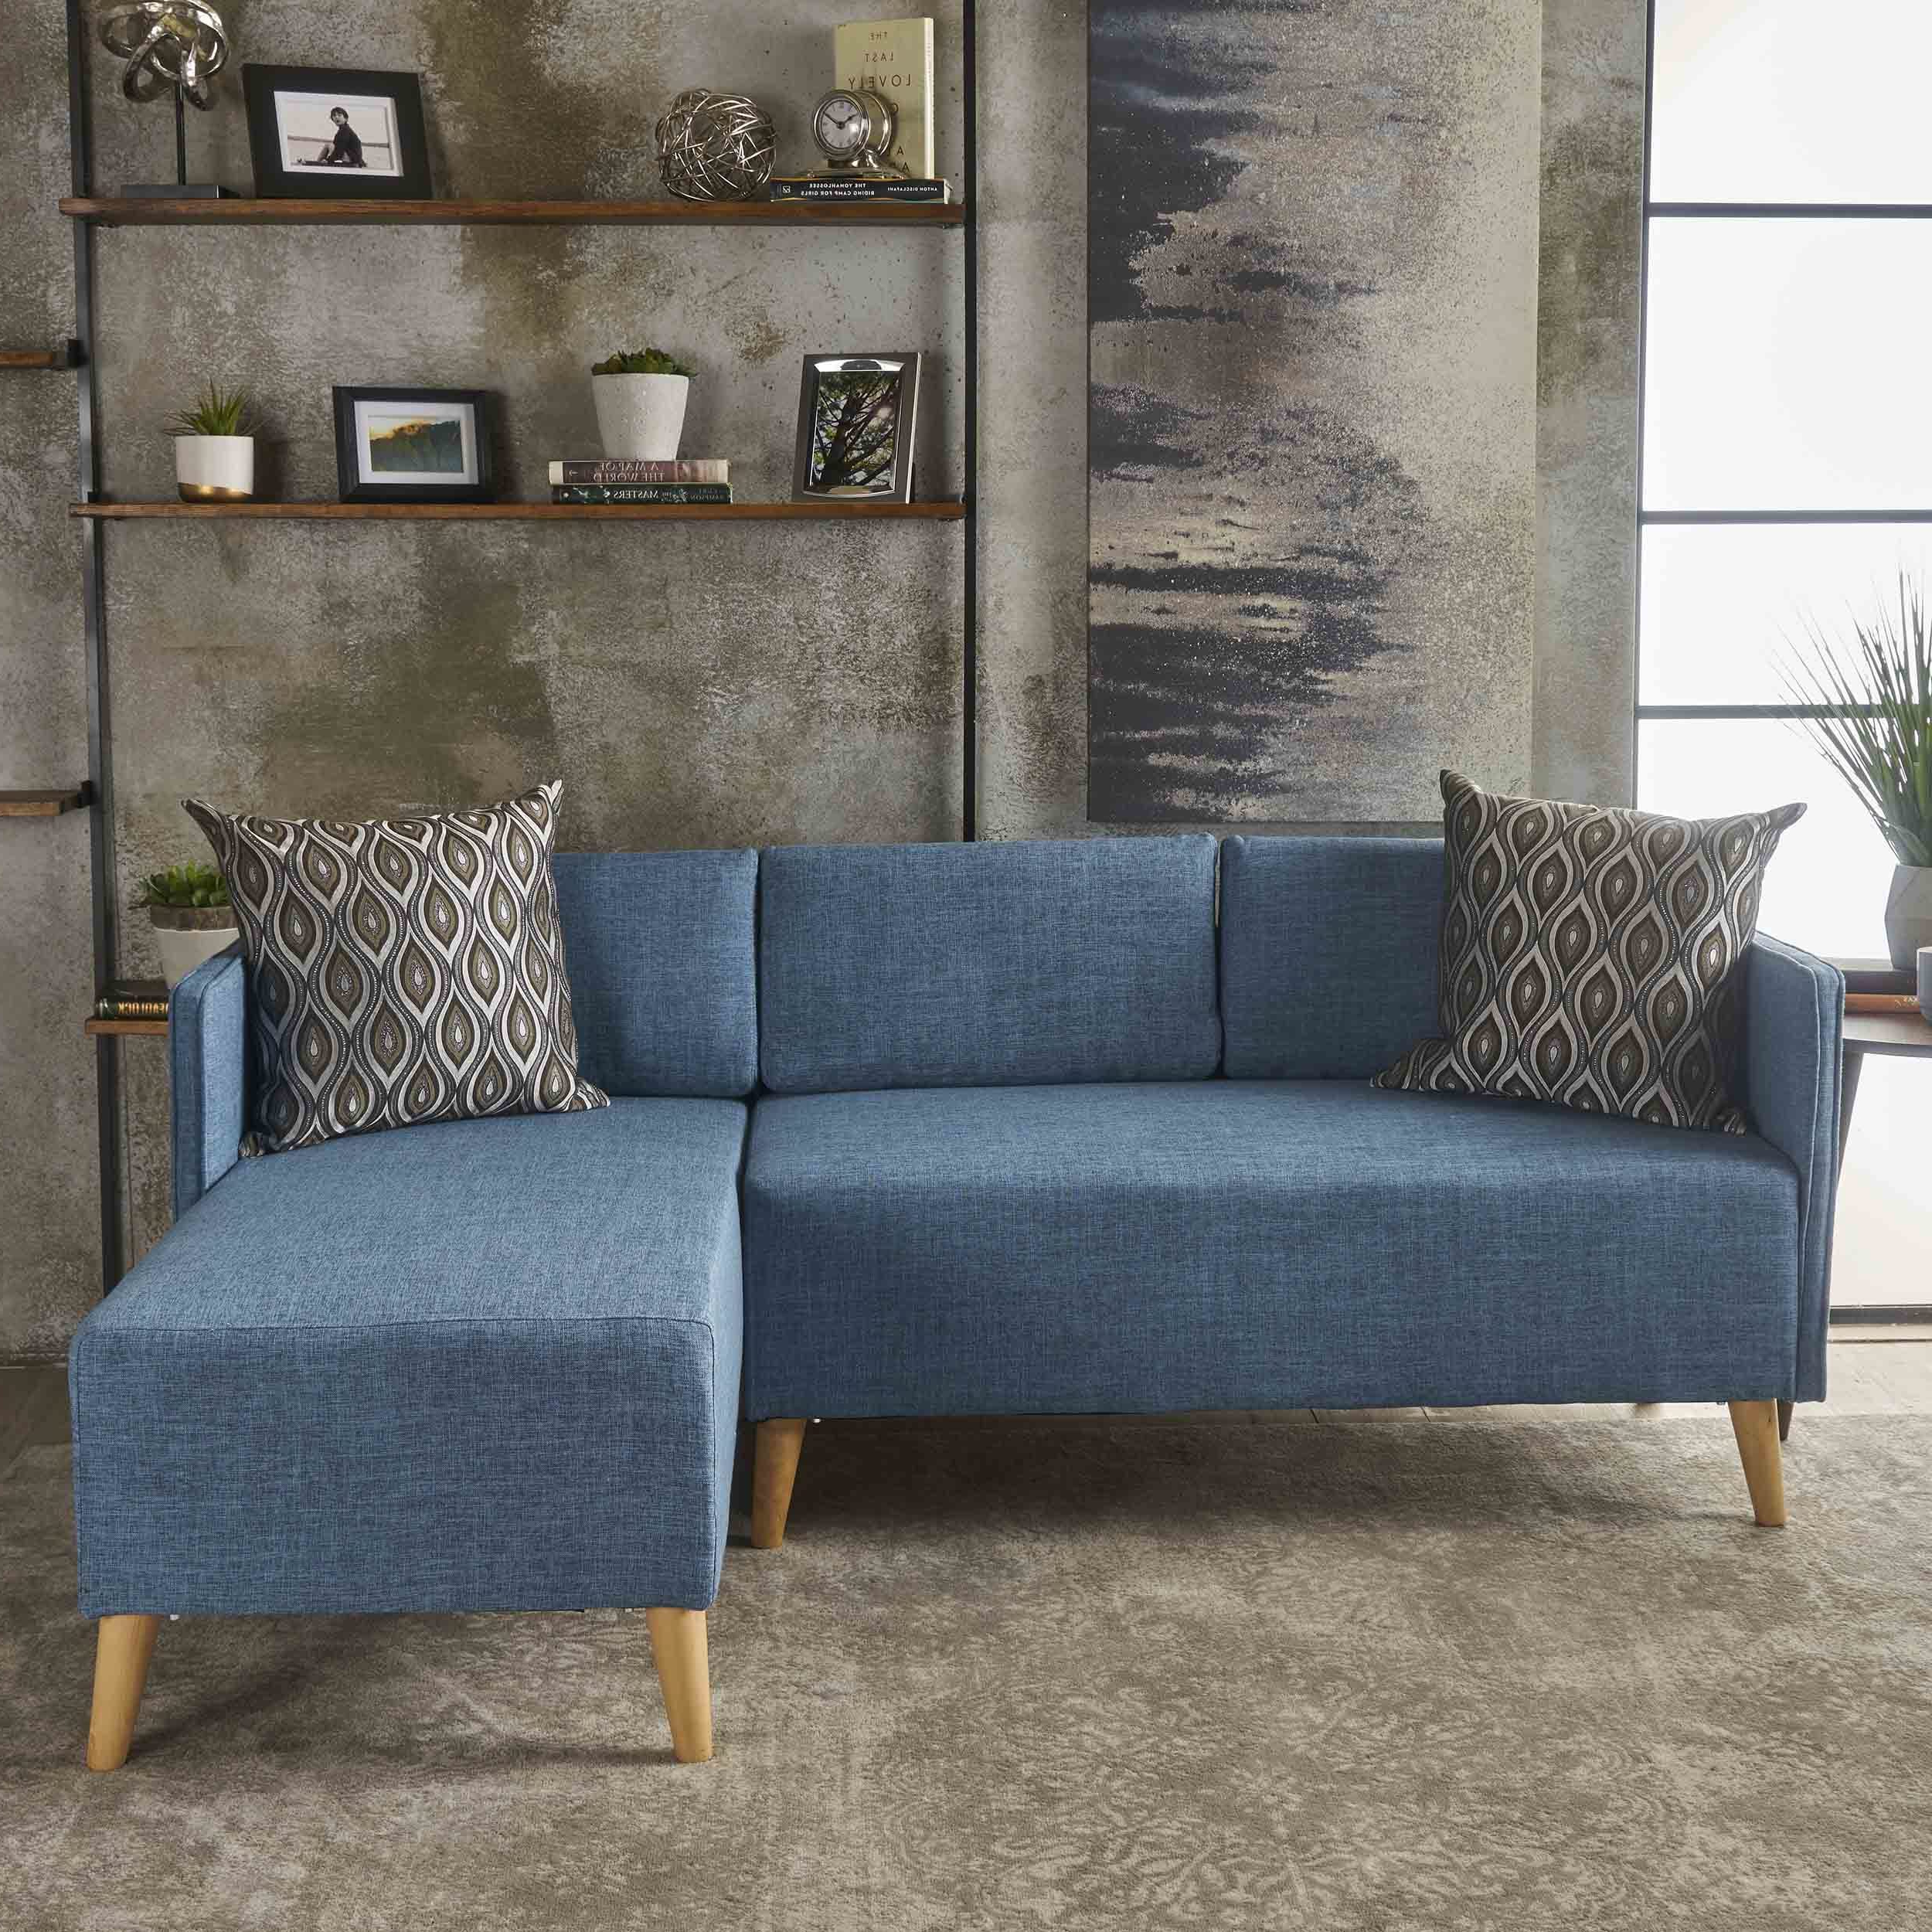 2 Piece Chaise Sectional Sofa (View 1 of 20)